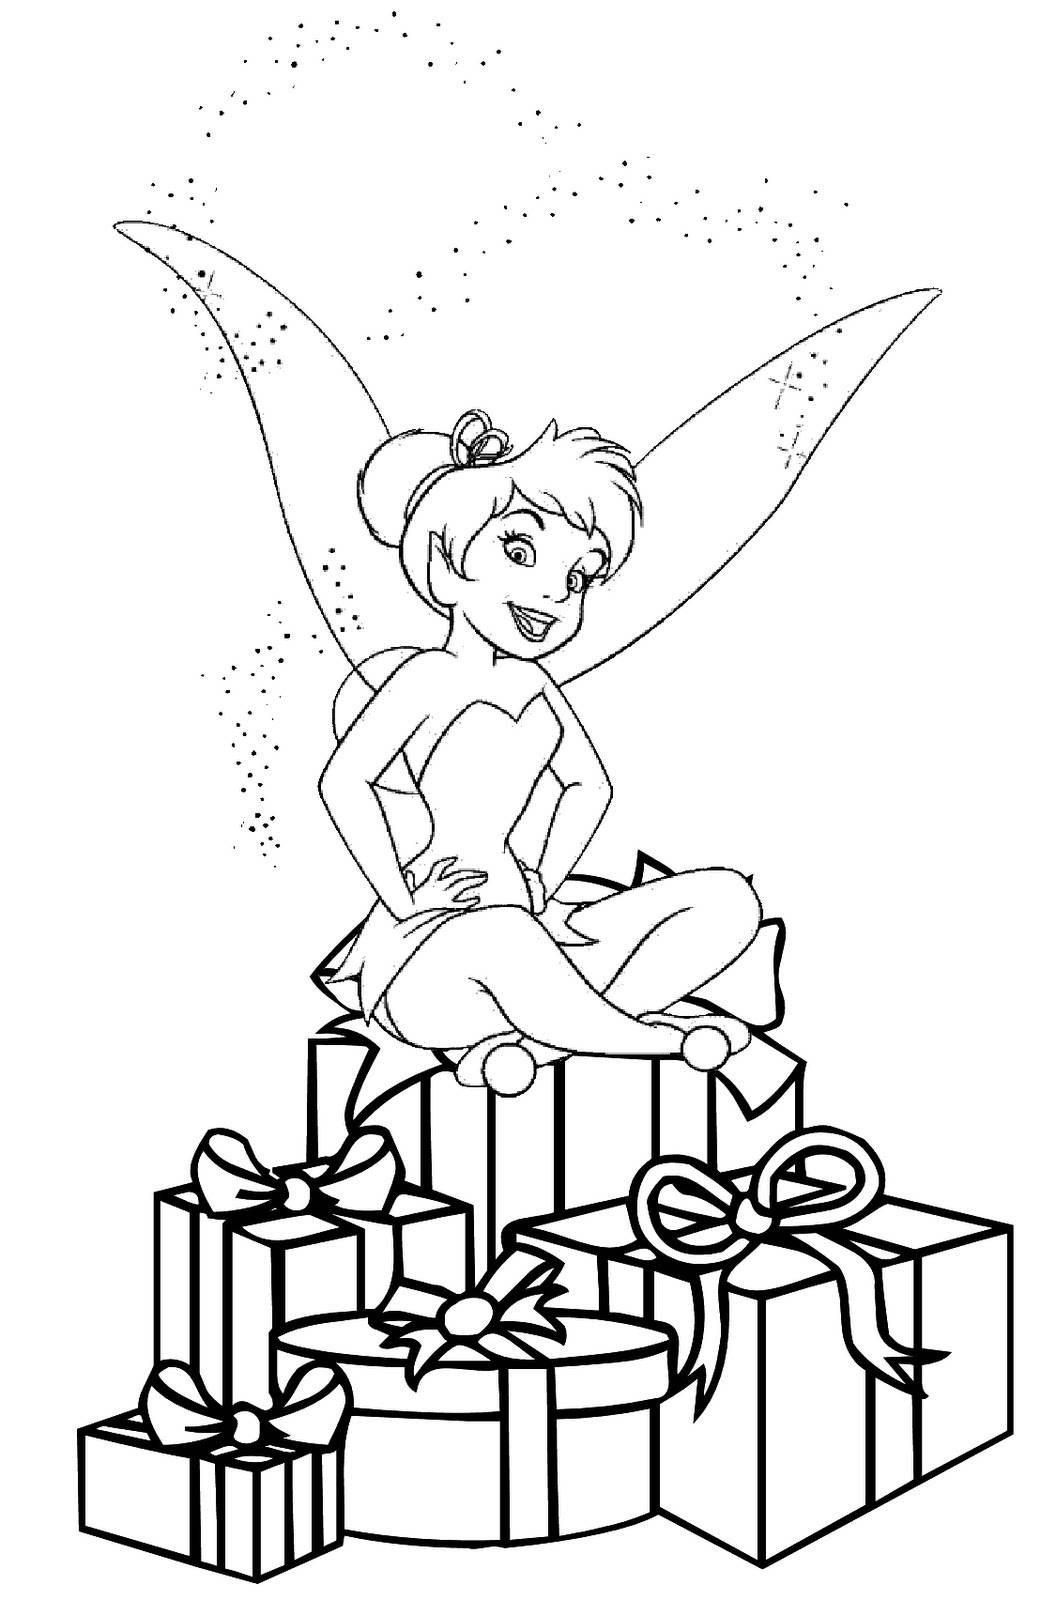 Christmas Coloring Games To Play Online With Free Printable Tinkerbell Pages For Kids